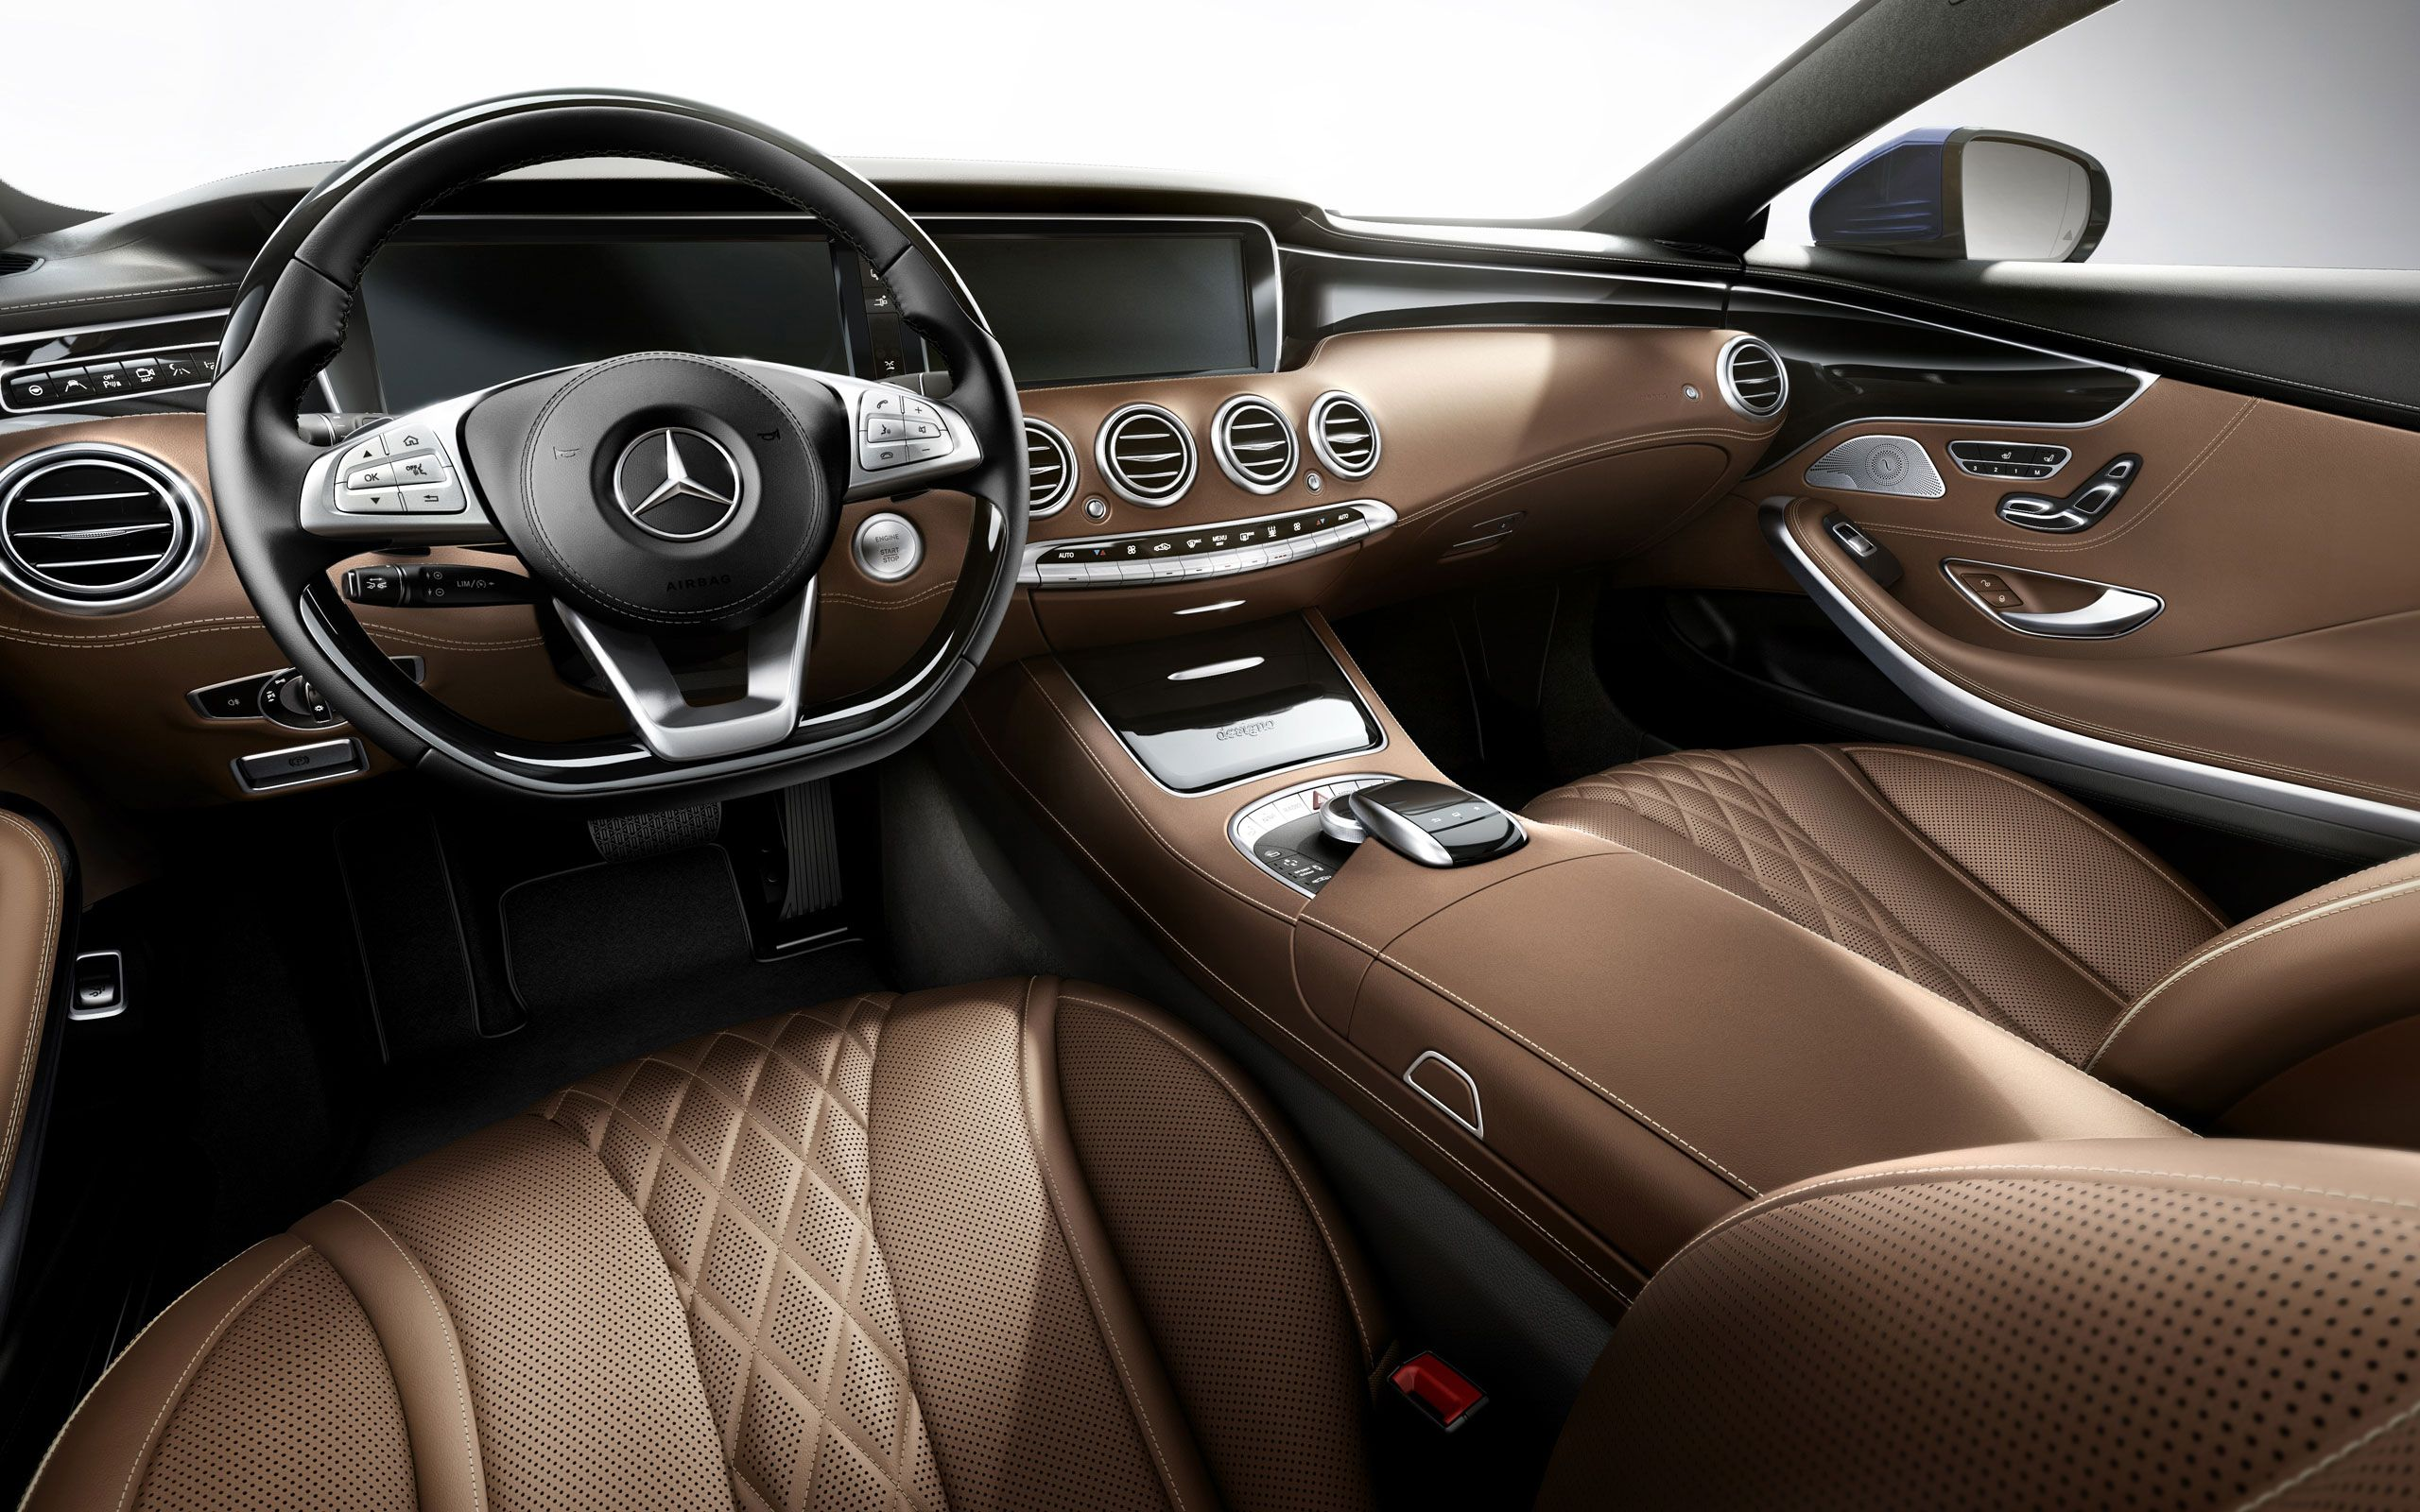 All New Mercedes Benz S Class Coupe European Model Shown With